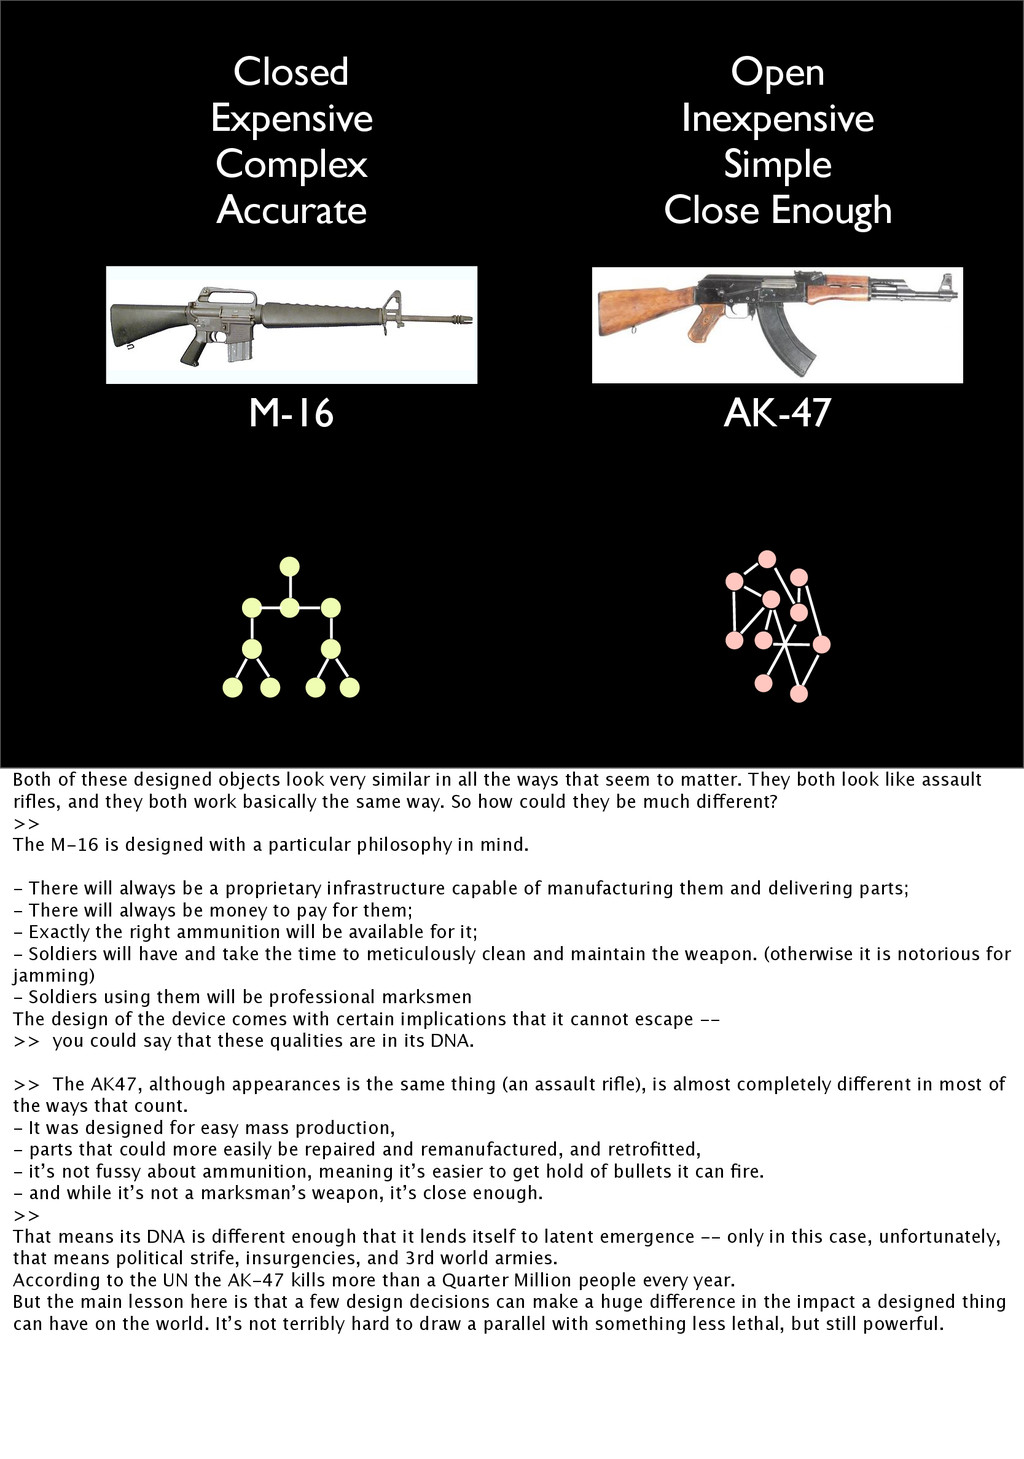 Closed Expensive Complex Accurate M-16 AK-47 Op...